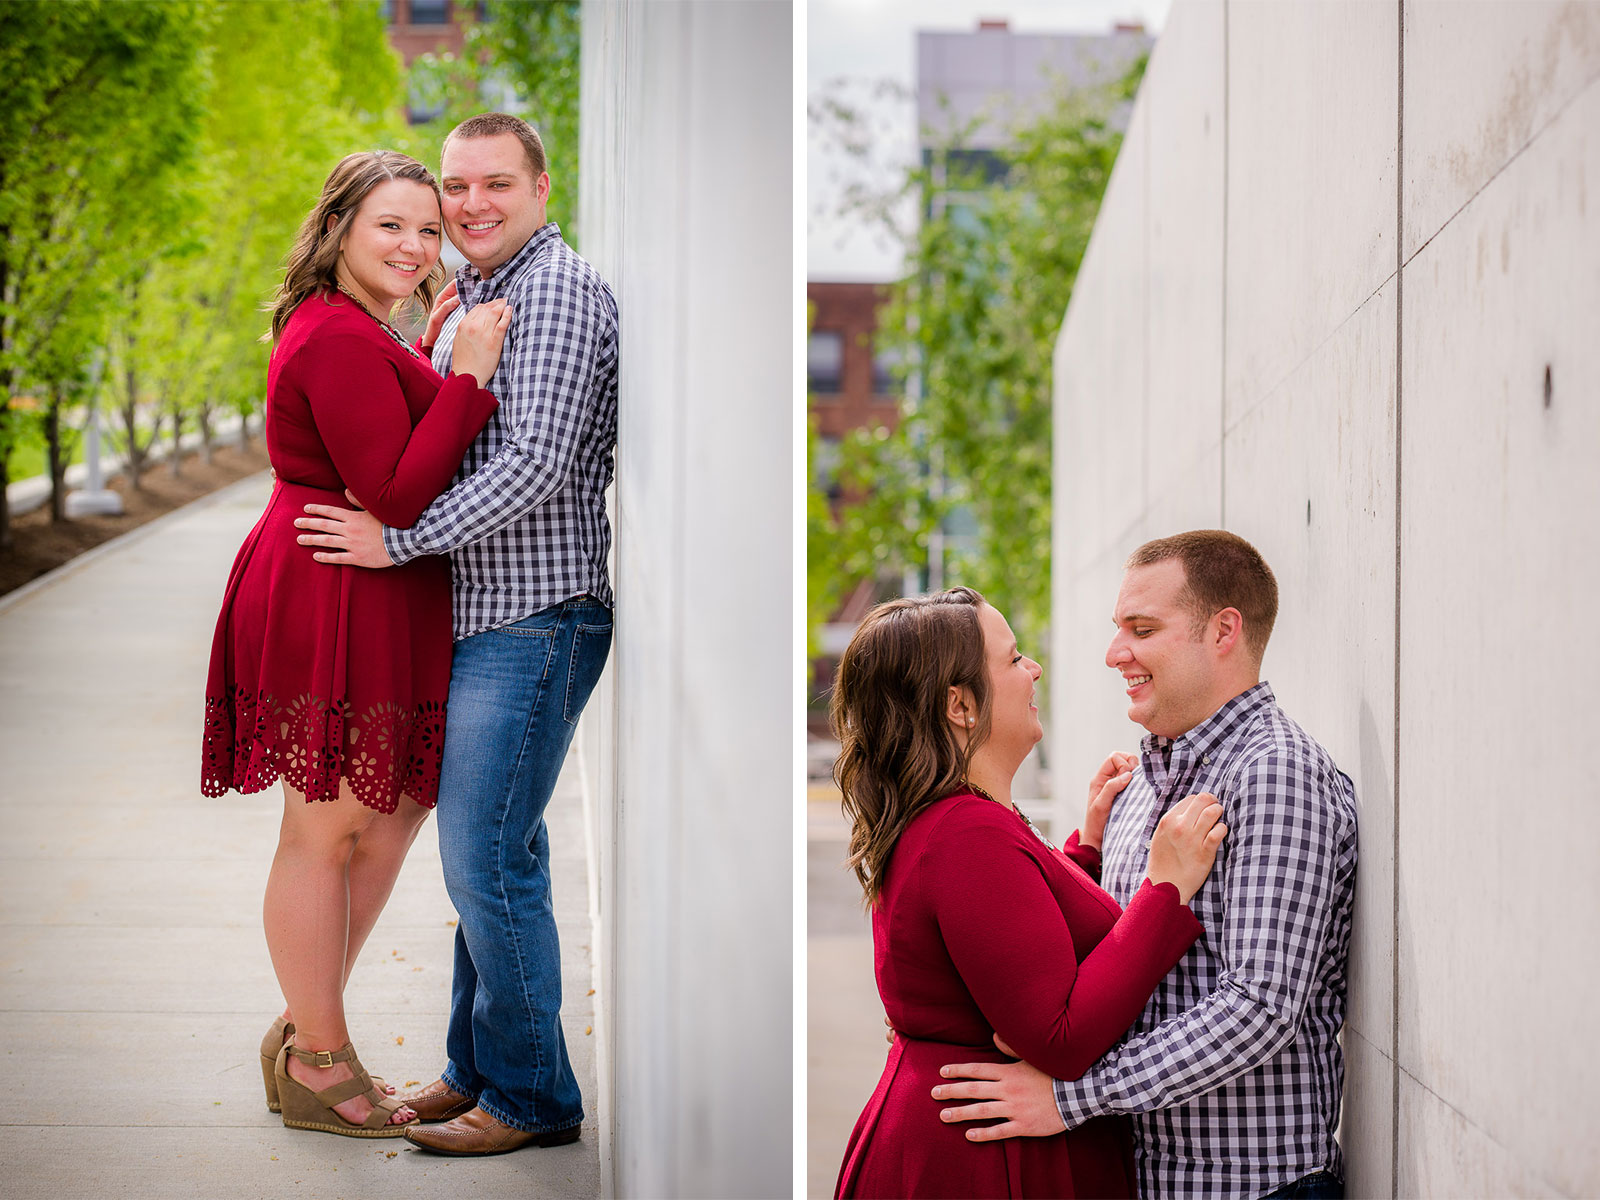 Eric_and_Christy_Photography_Blog_Stacey_Geoff_Engagement-1-2